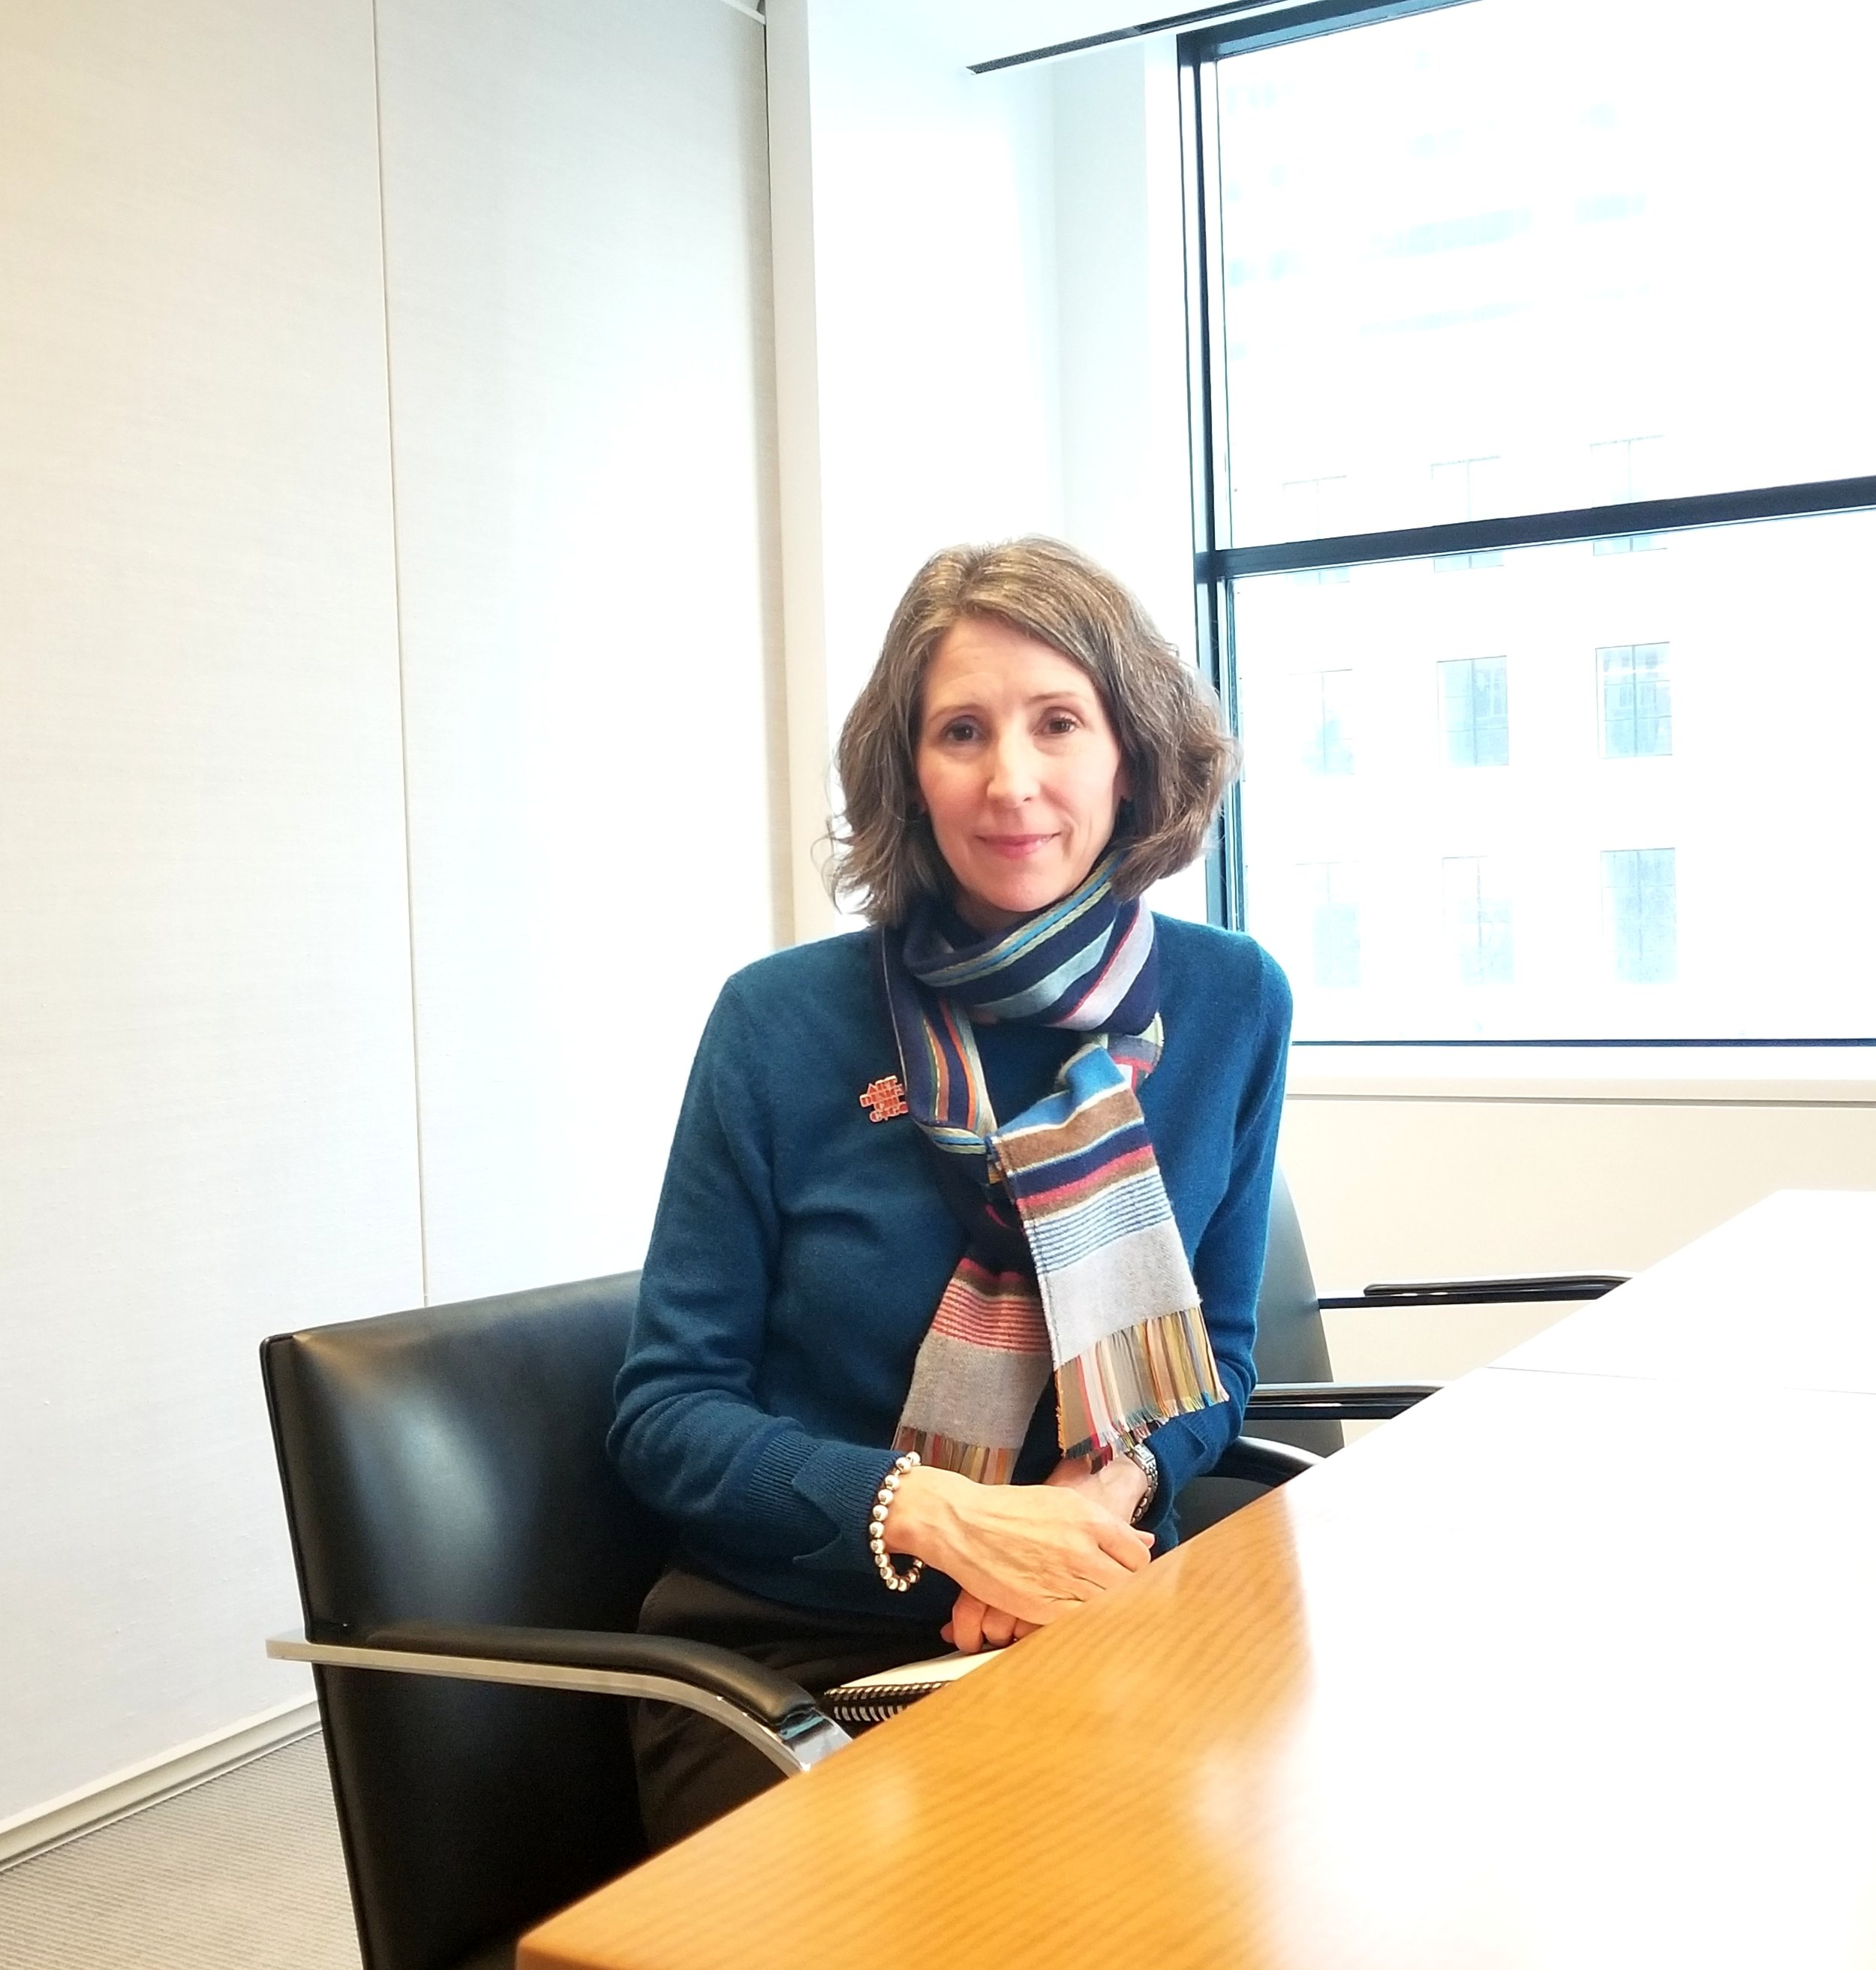 Jenny Seigenthaler, director of education grants and initiatives at the Terra Foundation